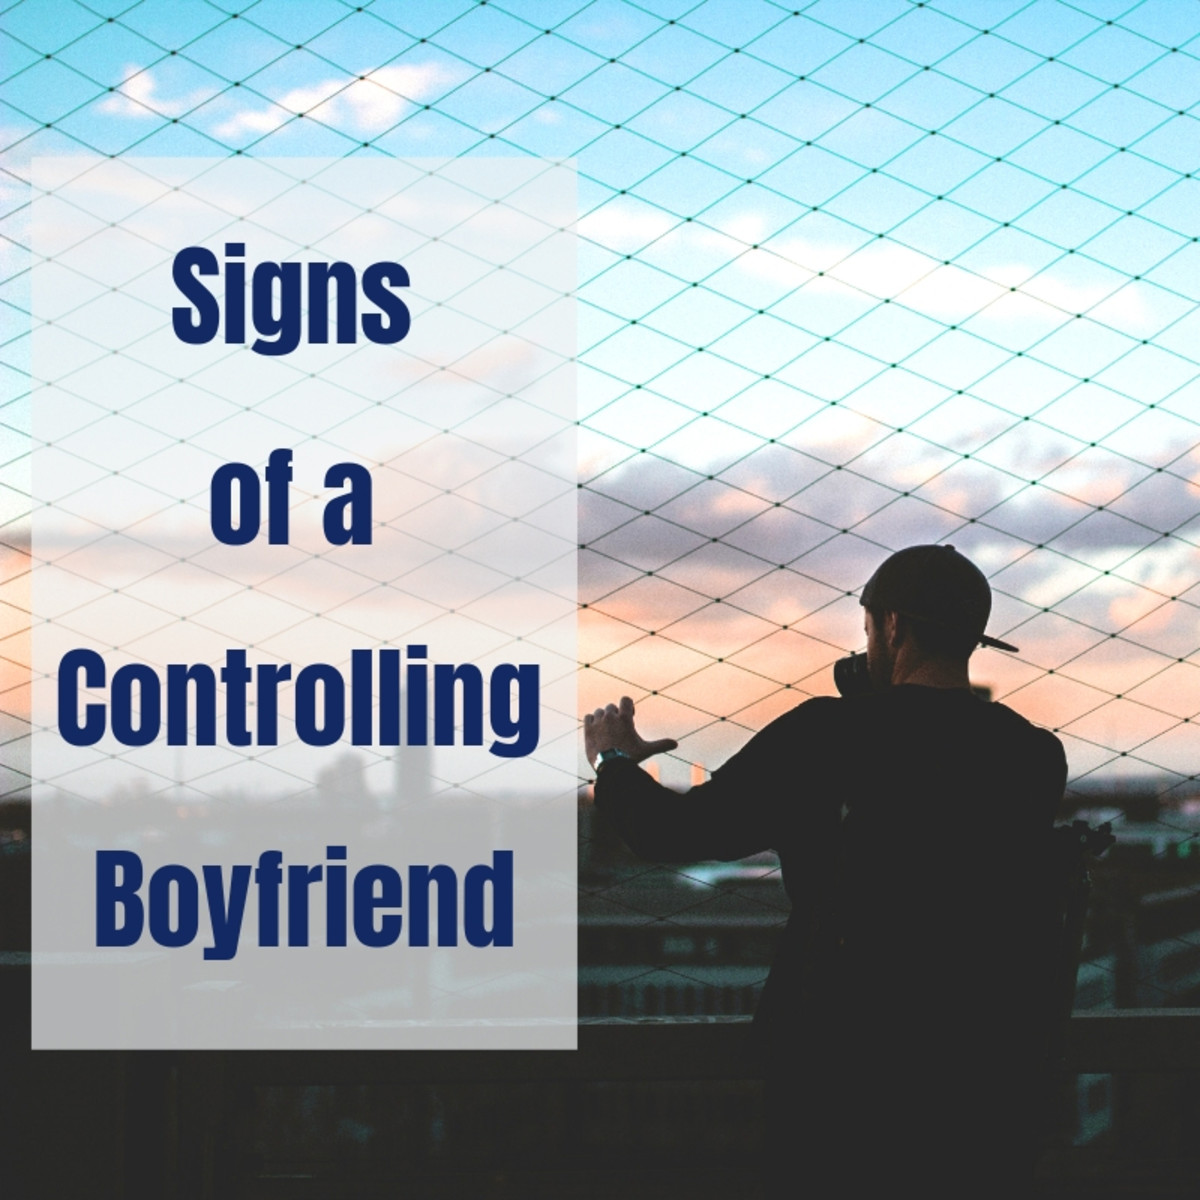 15 Signs of a Controlling Boyfriend & How to Deal With a Controlling Relationship